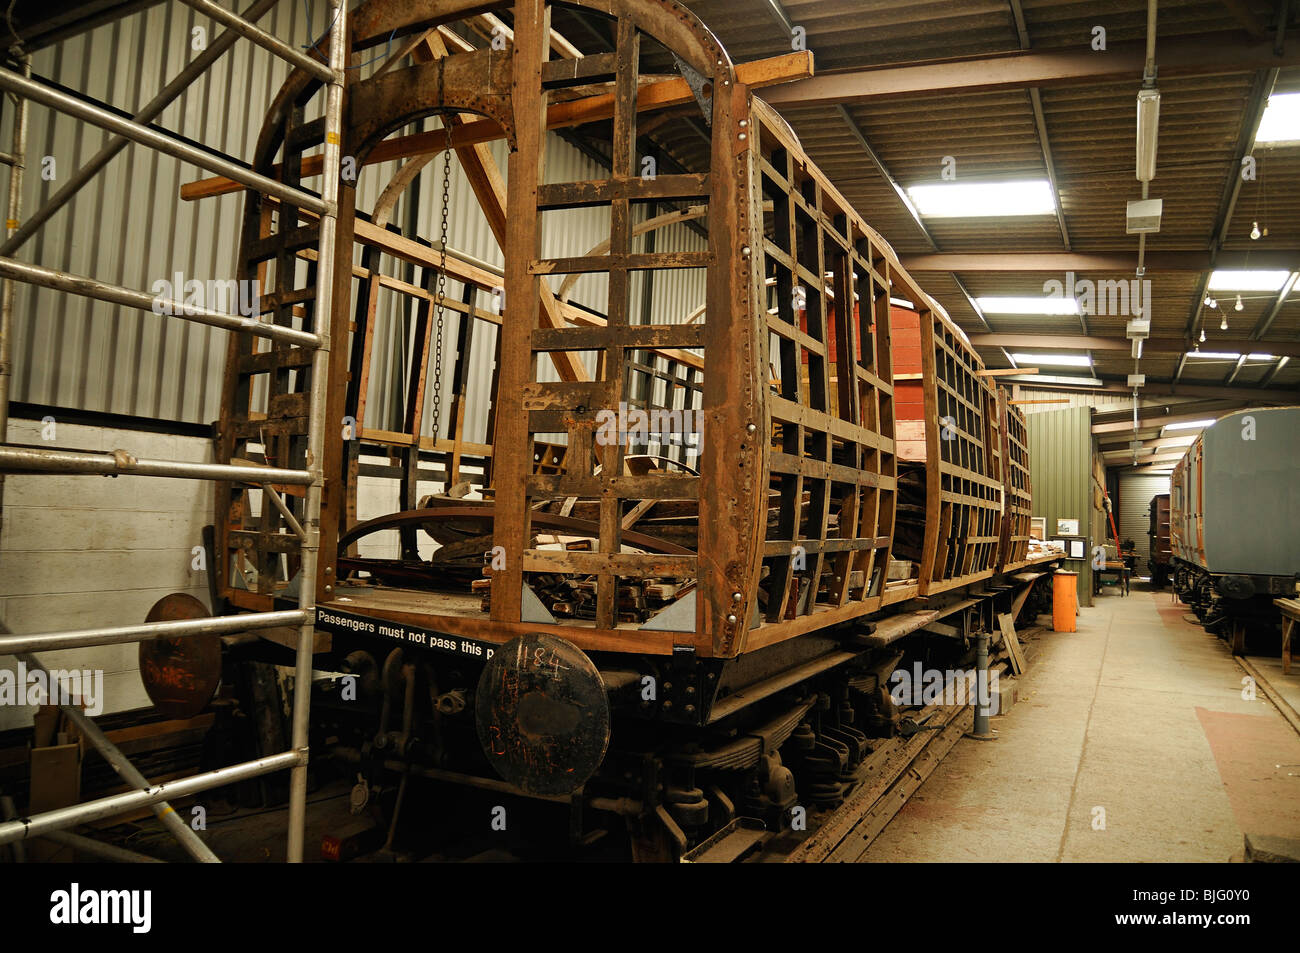 Didcot Railway Centre, Train Carriage Under Restoration by the Great Western Railway Society. - Stock Image